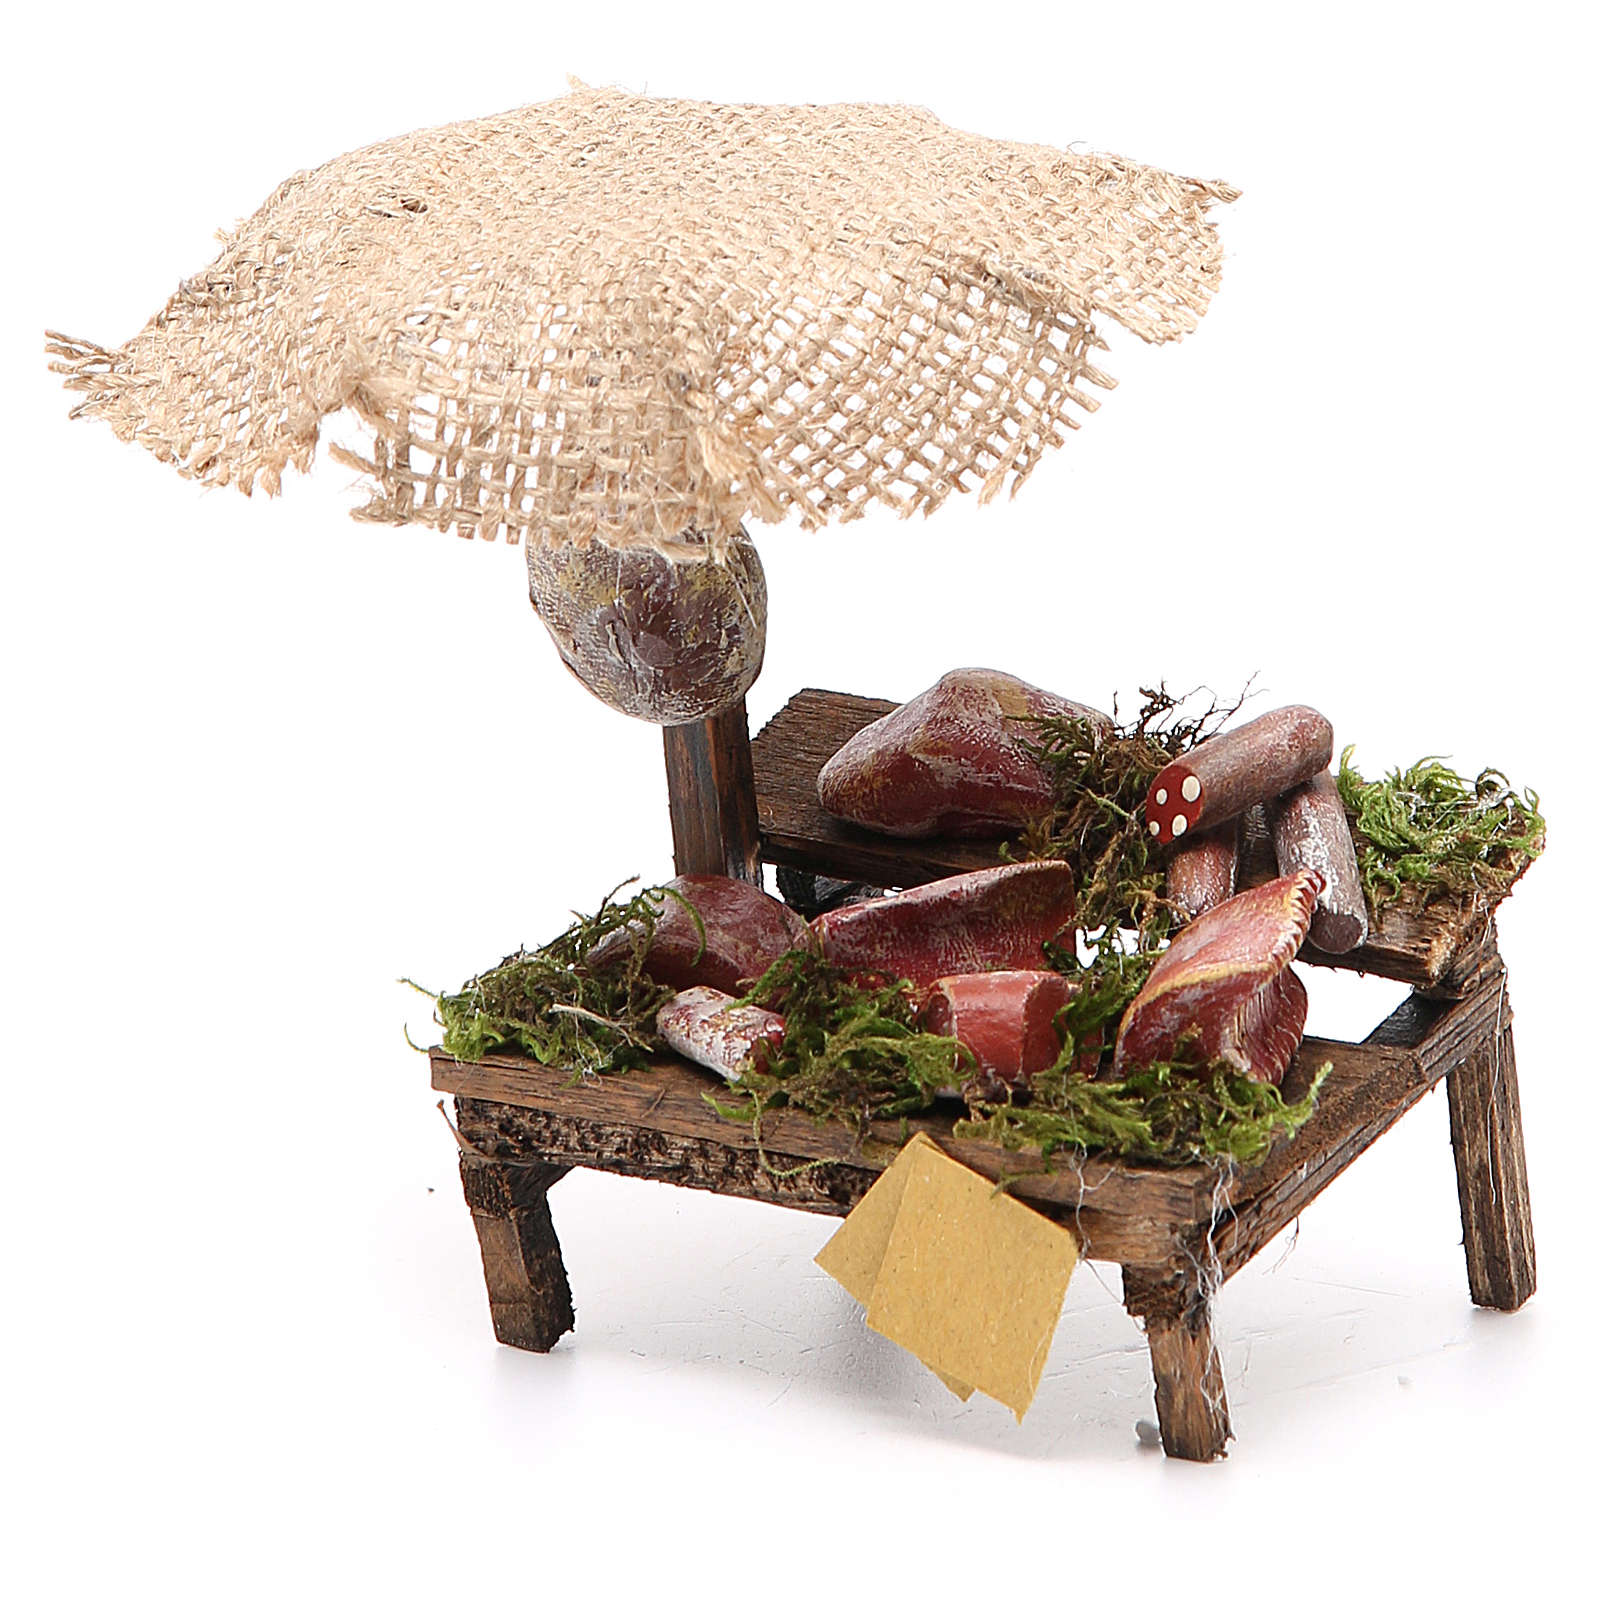 Workshop nativity with beach umbrella, cured meats 12x10x12cm 4